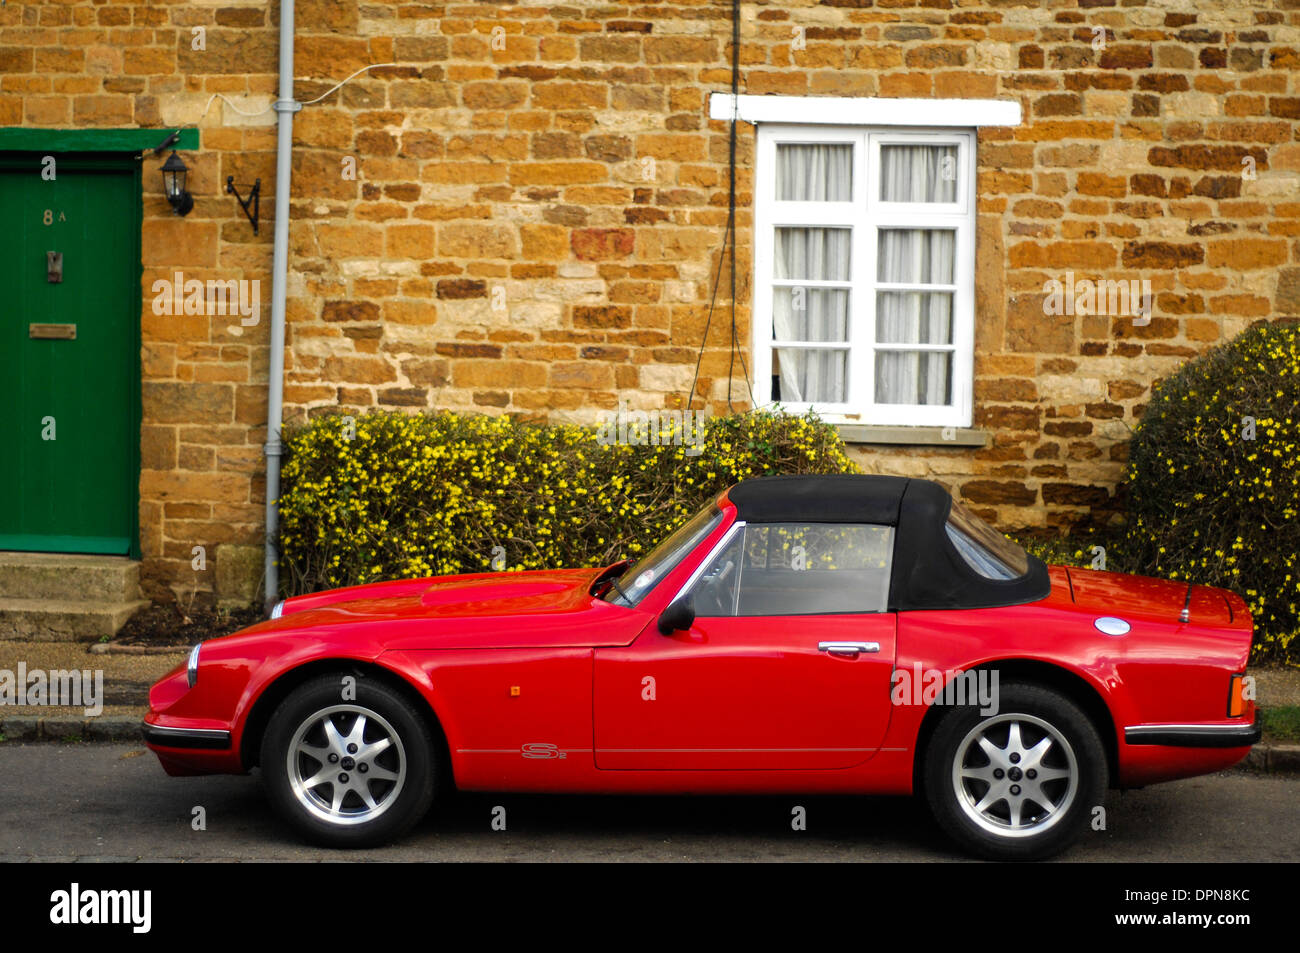 tvr-sports-car-s2-model-red-convertible-